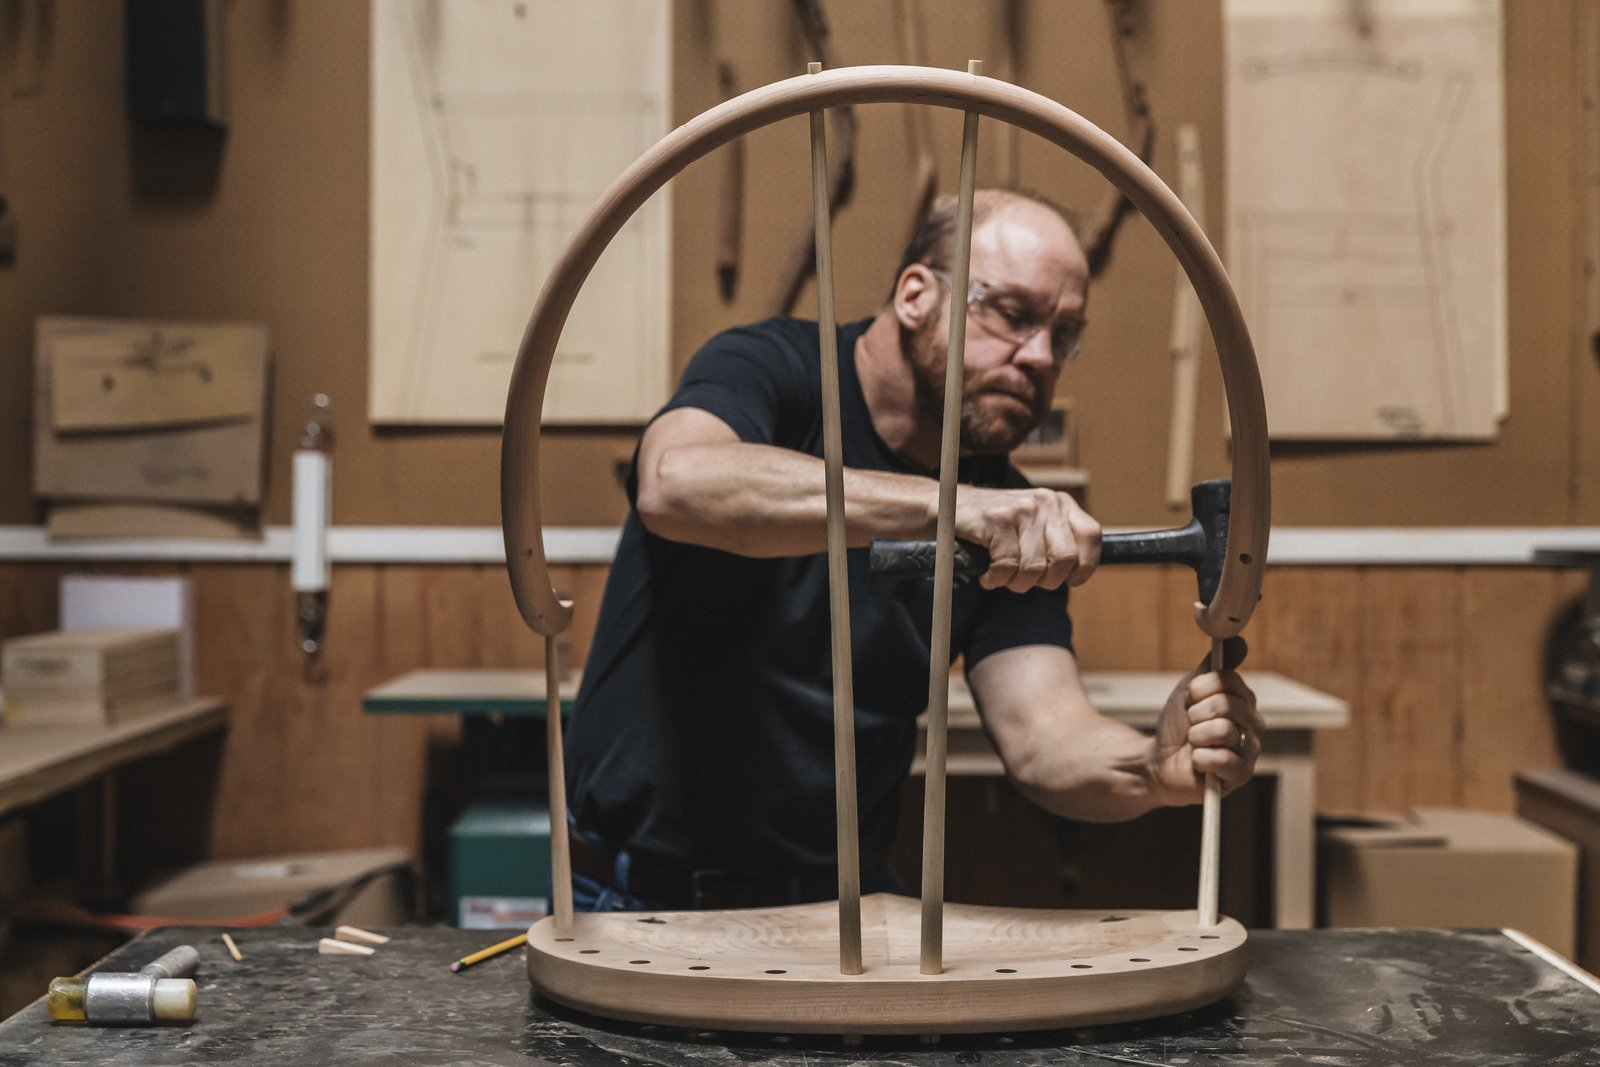 Watch: It Takes 9 Hours For Woodworkers to Make This Shaker-Inspired Chair